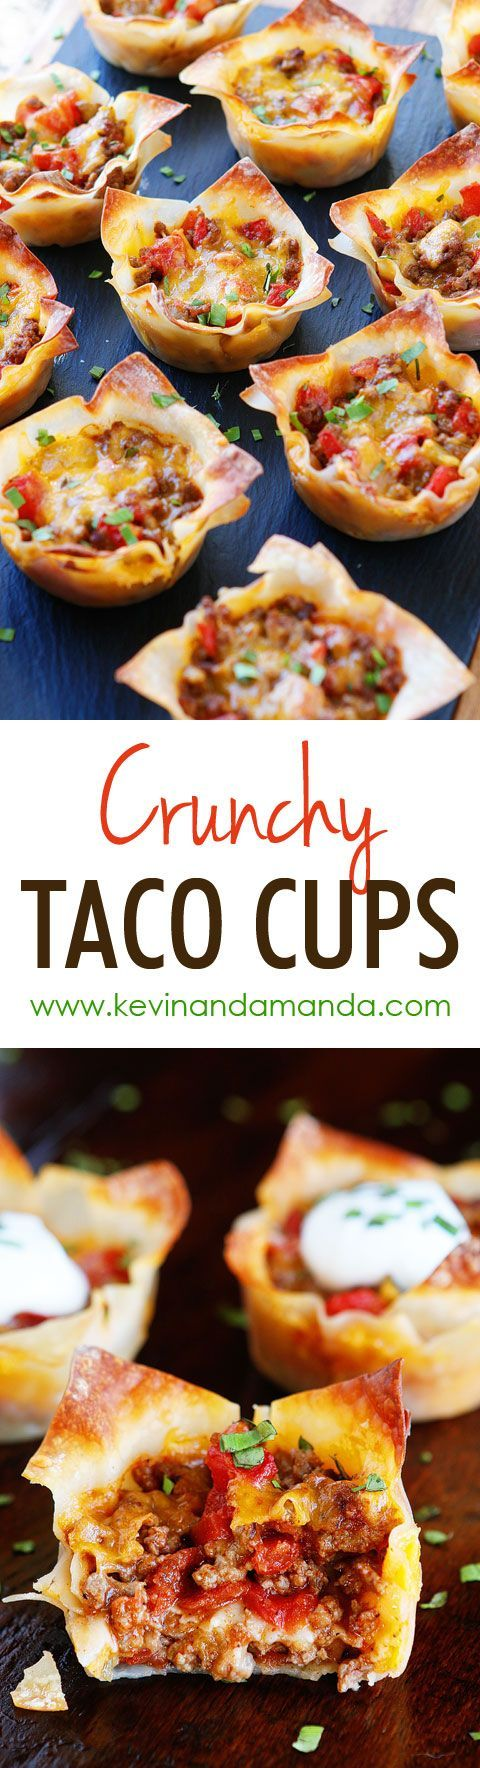 These fun Crunchy Taco Cups are made in a muffin tin with wonton wrappers!  Great for a taco party/bar. Everyone can add their own ingredients and toppings! Crunchy, delicious, and fun to eat!! via Kevin & Amanda #horsdoeuvres #appetizers #fingerfoods #tapas #partyfood #christmaspartyfood #newyearsevepartyfood #newyearseve #tailgating #superbowl #easyappetizers